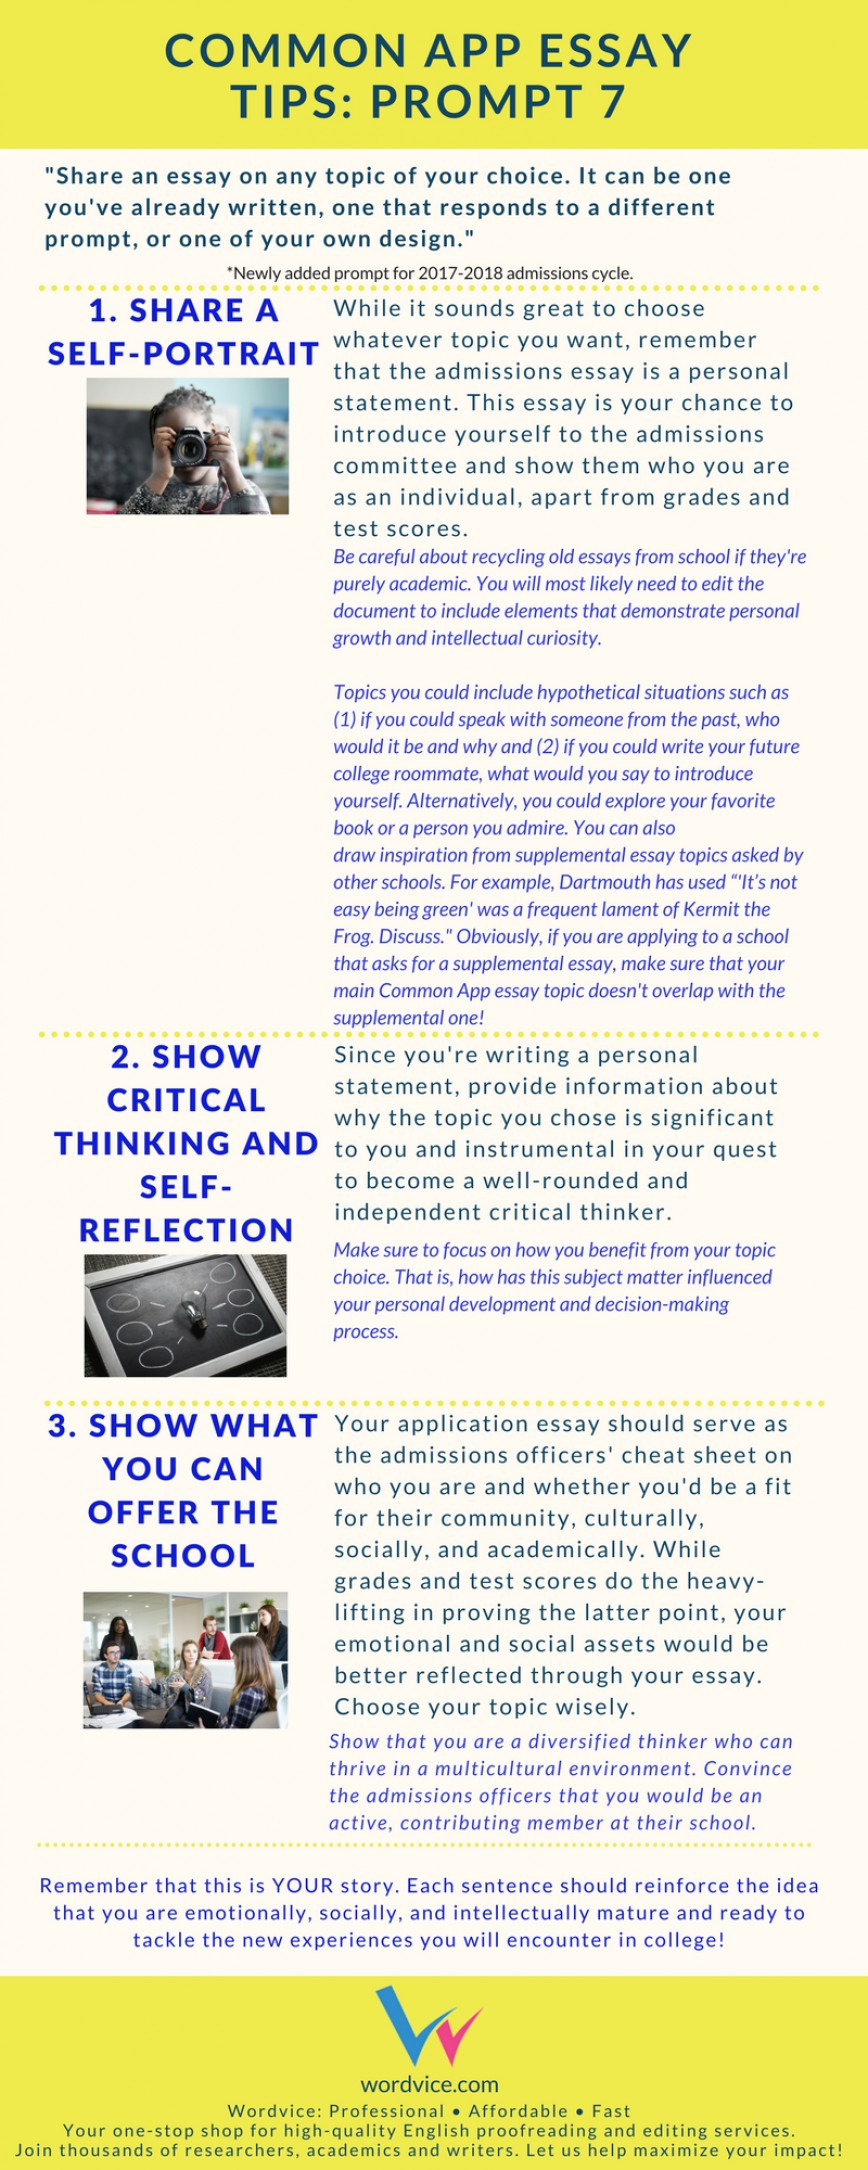 006 Common Application Essay Prompts App Brainstormprompt Imposing Examples Prompt 3 2 2017